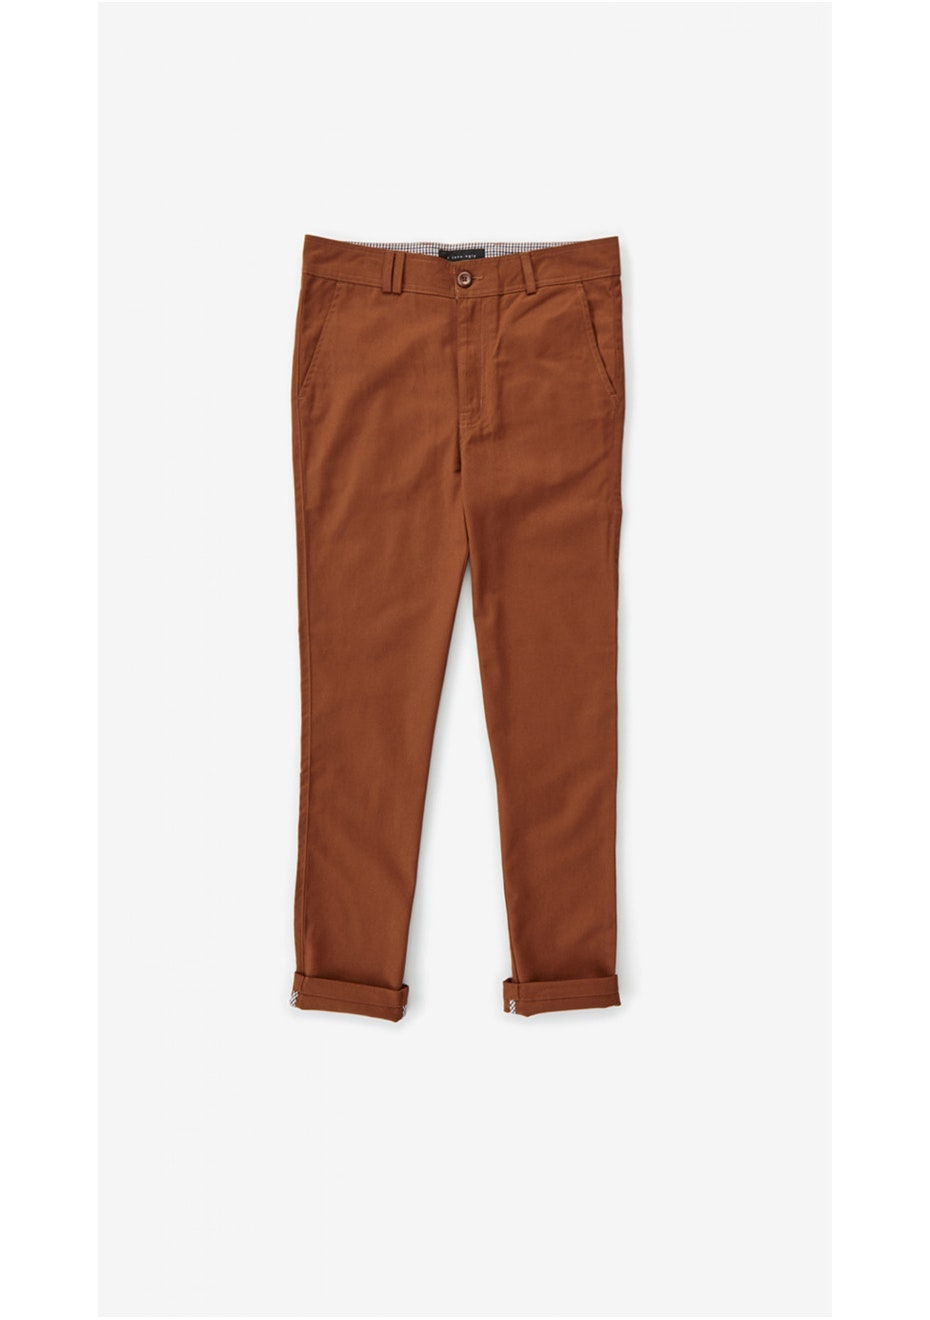 I Love Ugly - Jonty Pant Burnt Orange